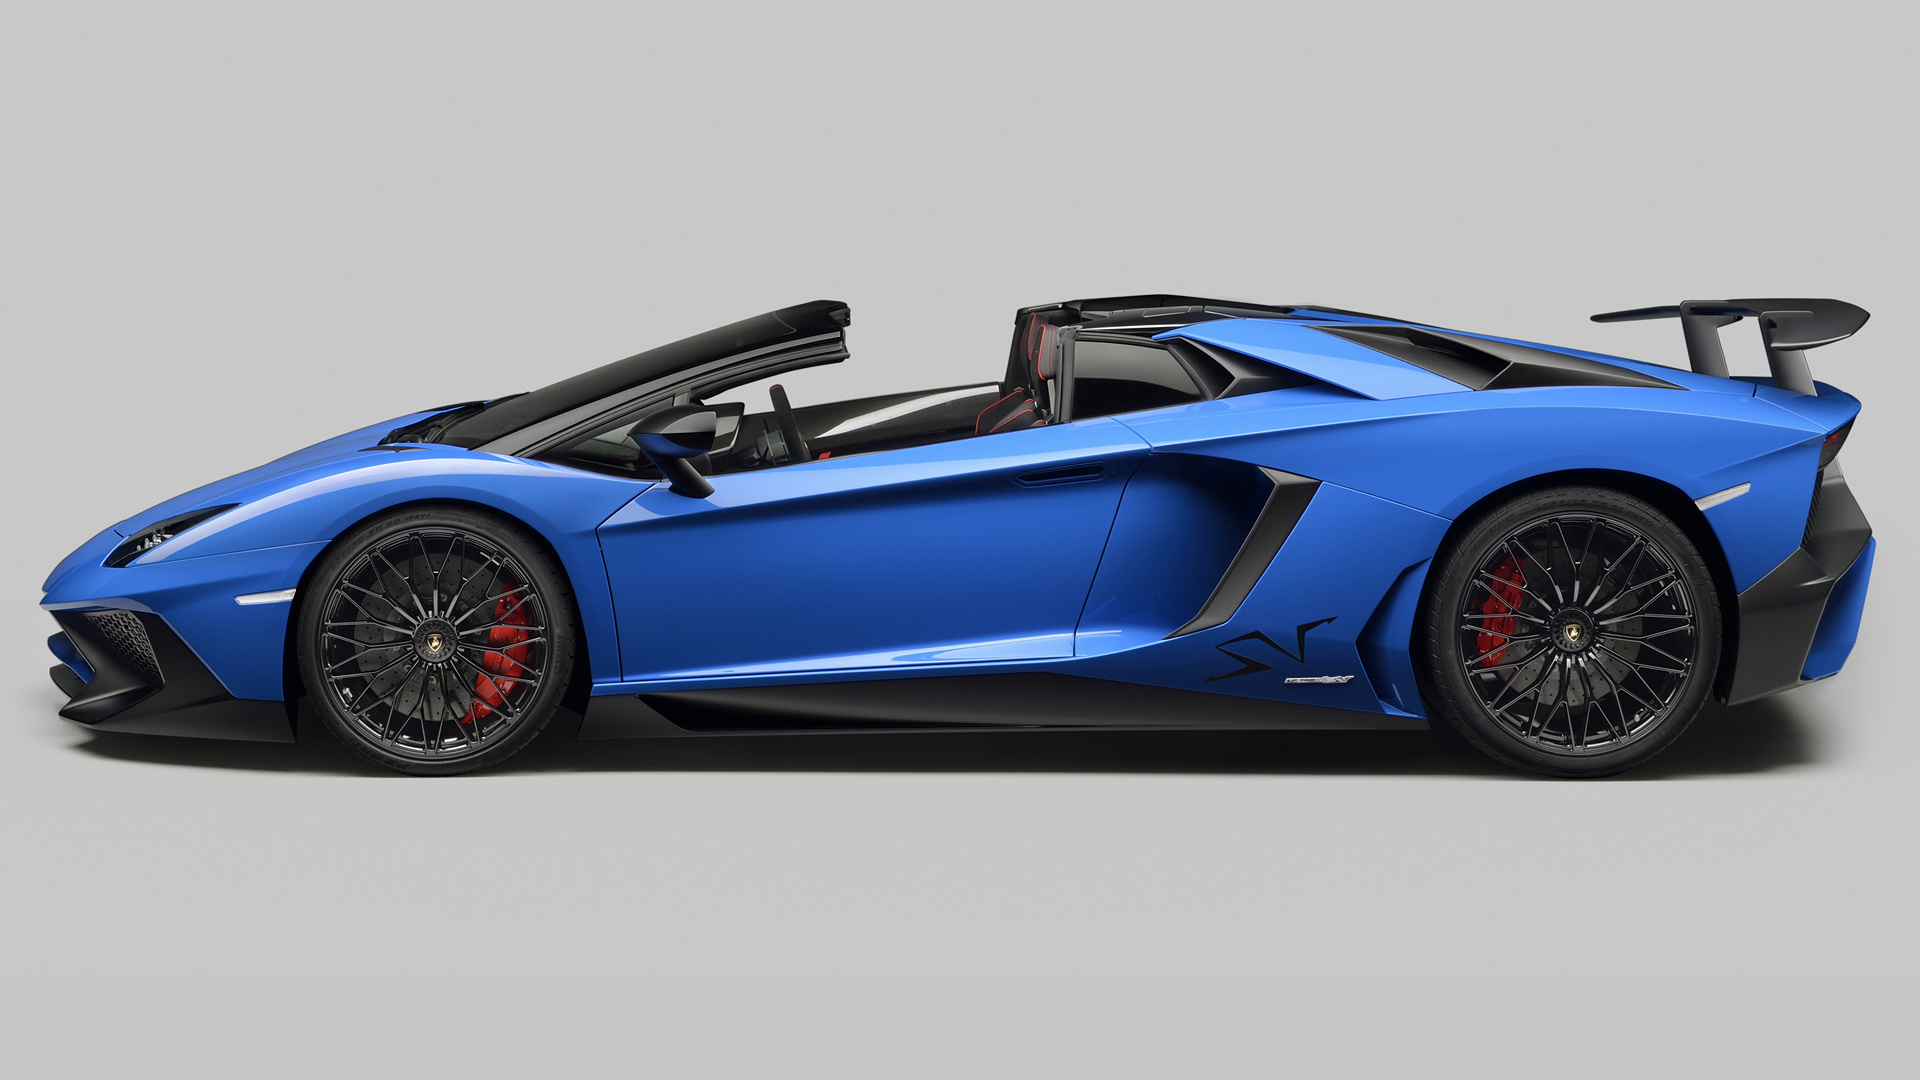 lamborghini aventador sv hd wallpapers. Black Bedroom Furniture Sets. Home Design Ideas